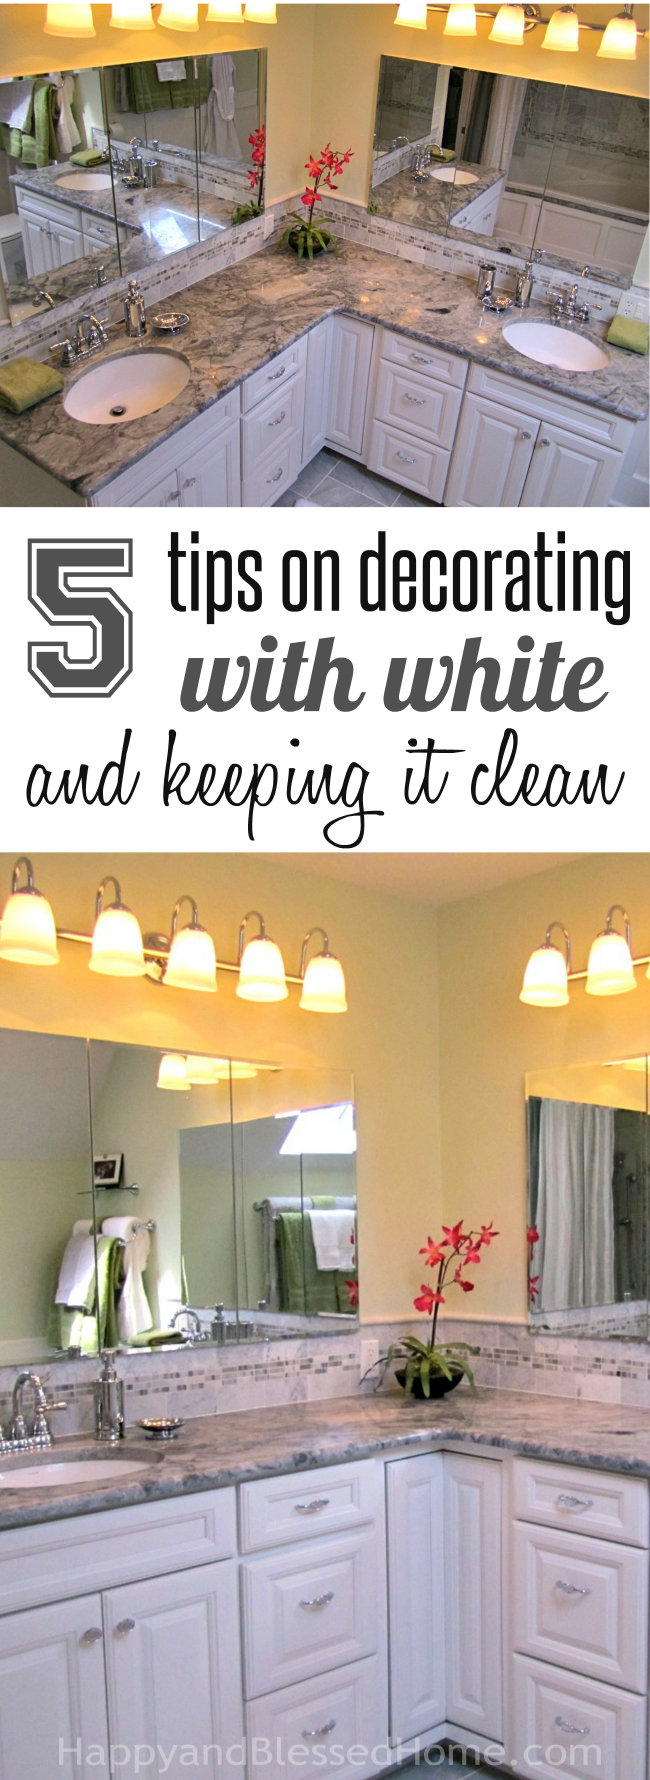 5 Tips for Decorating with White and Keeping it Clean